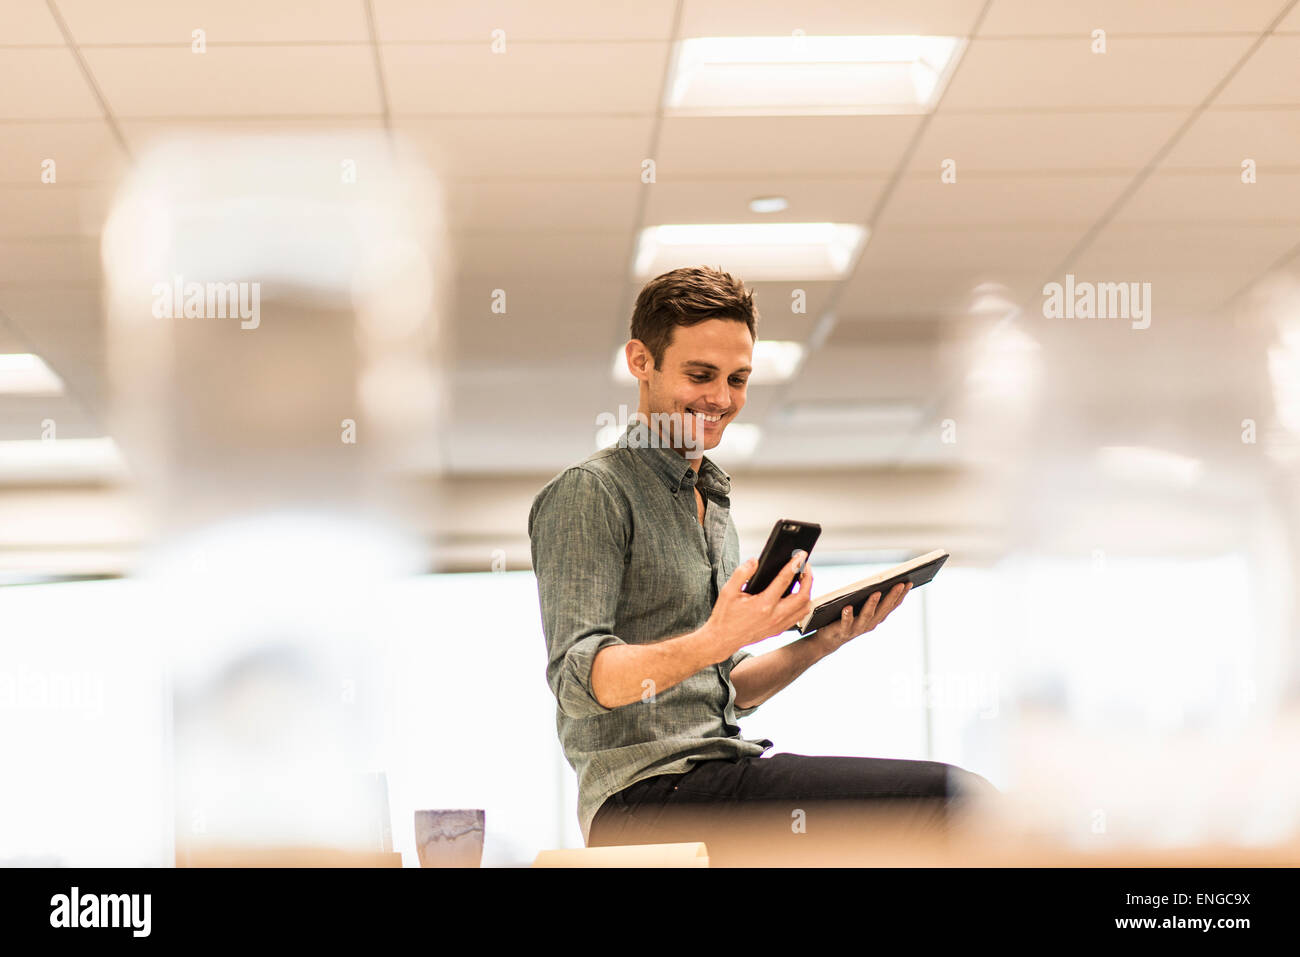 A young man seated looking at his smart phone, holding an open notebook. - Stock Image